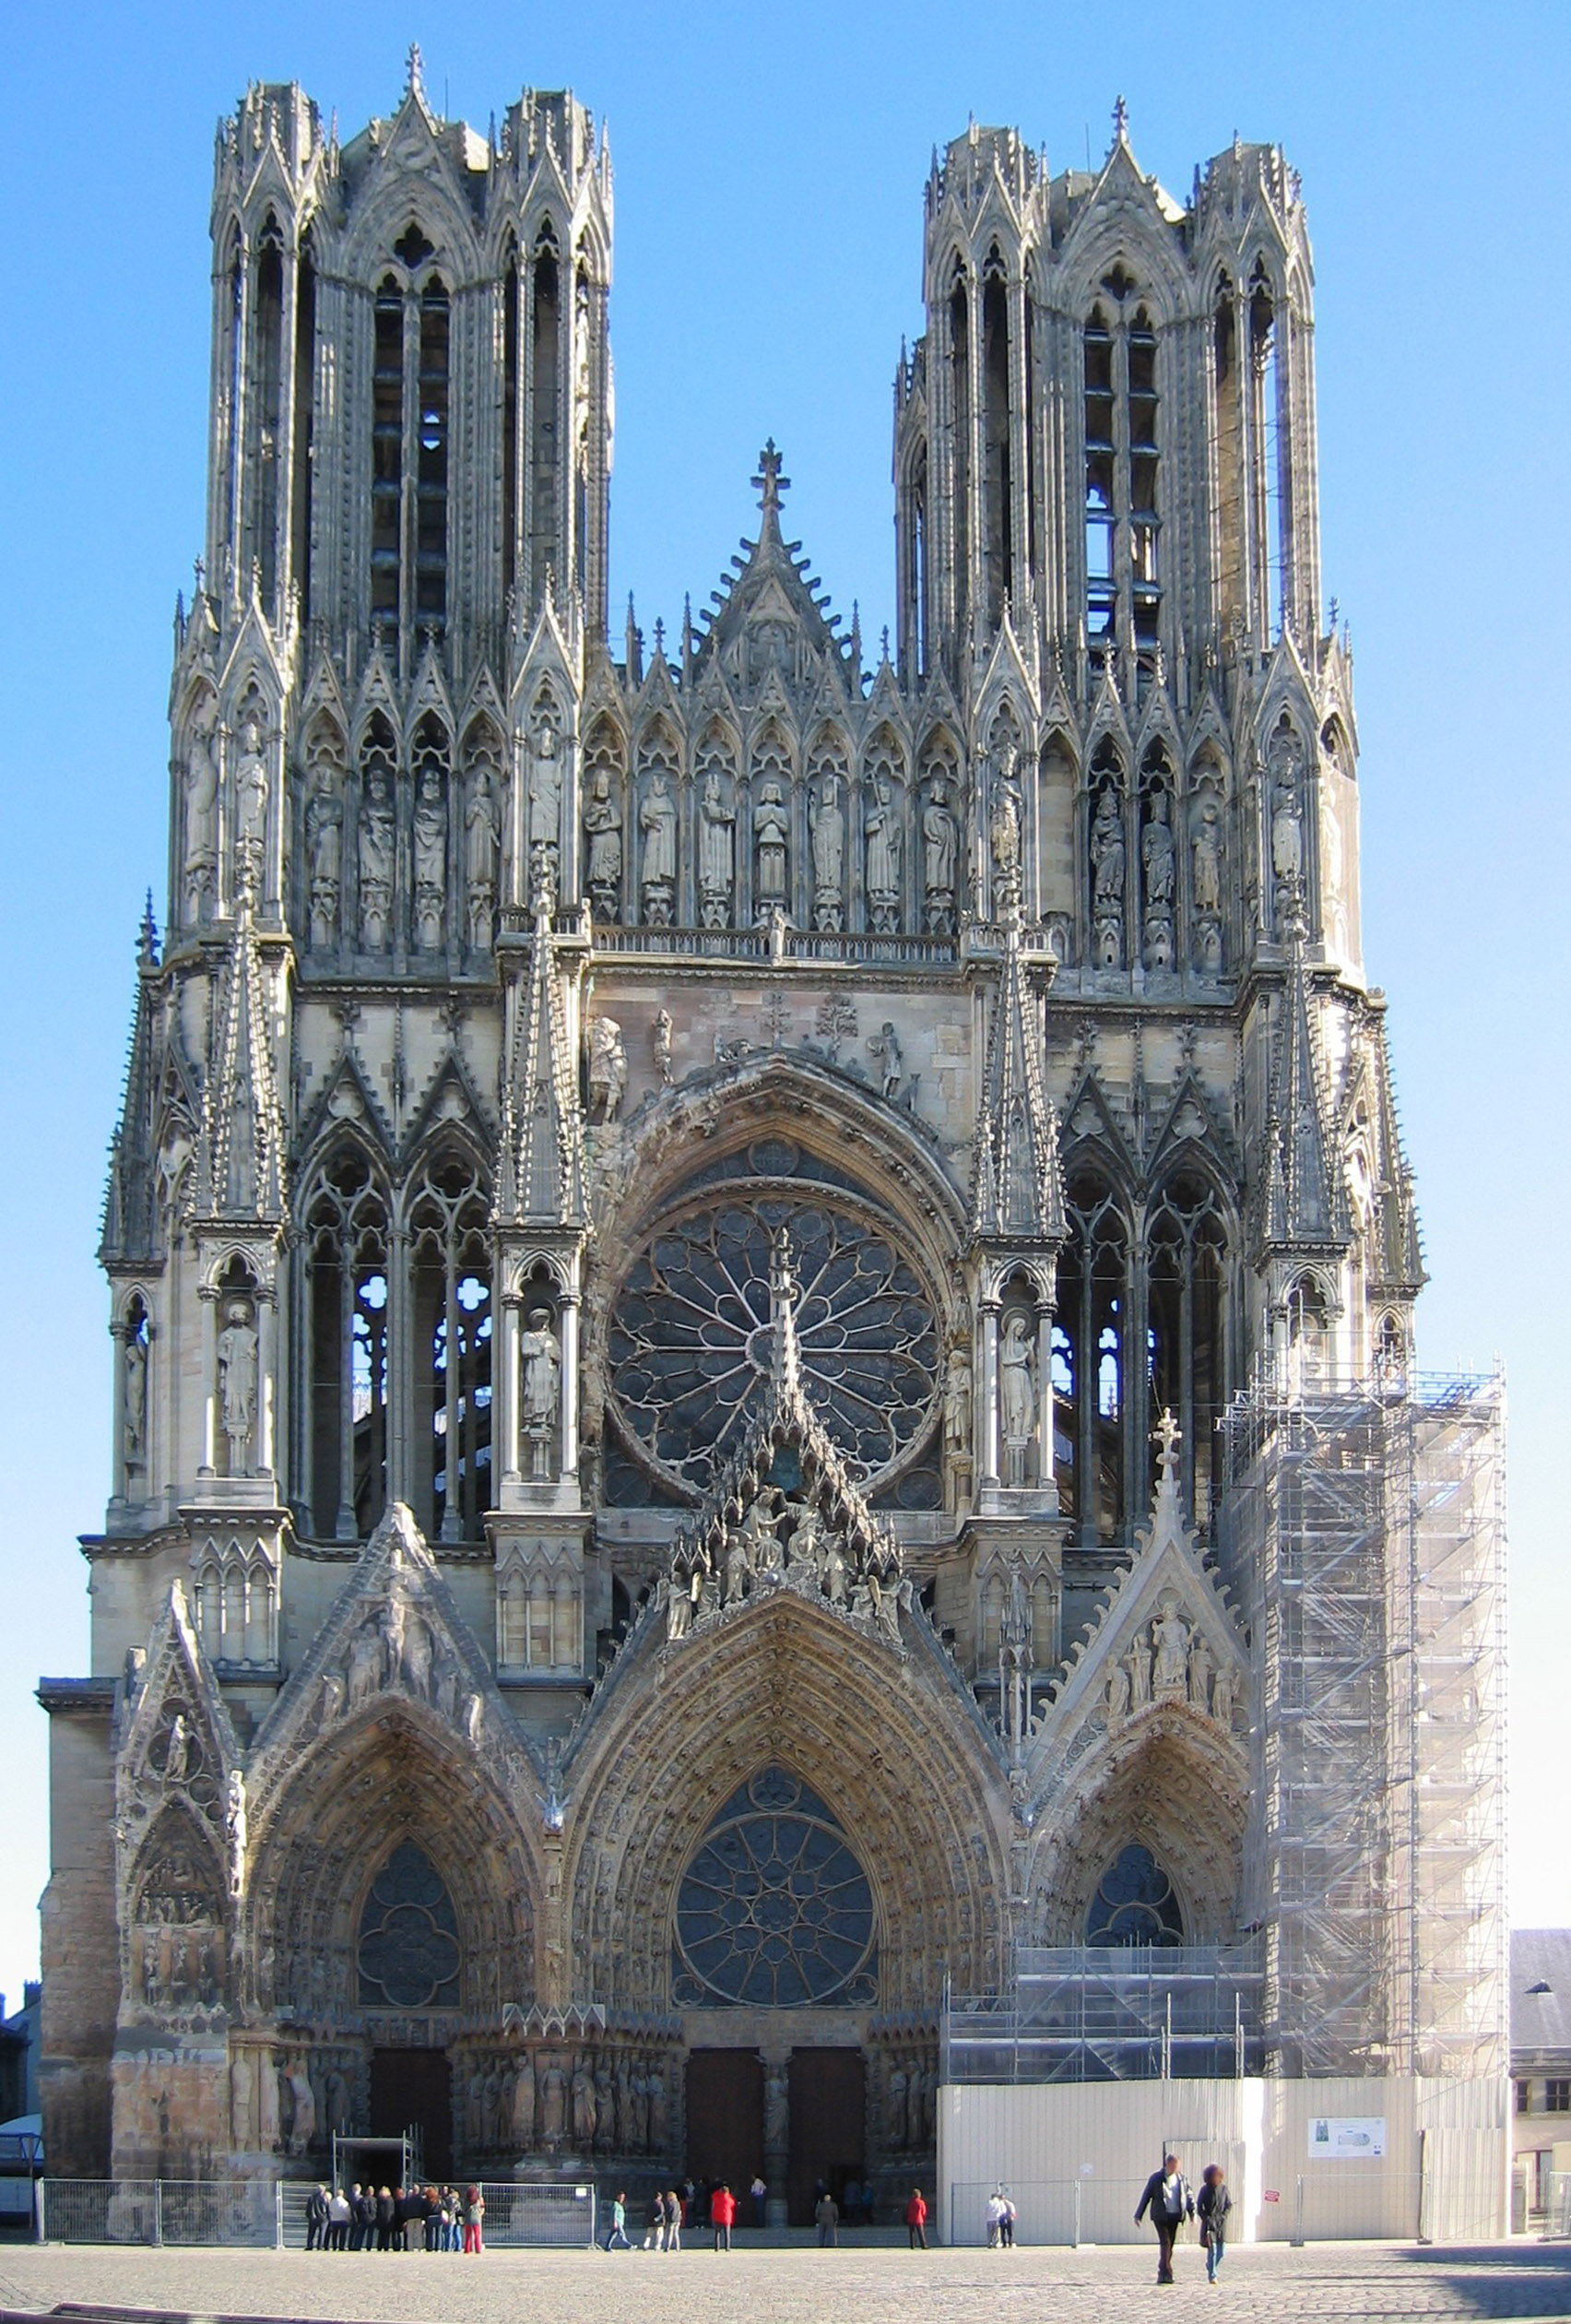 http://upload.wikimedia.org/wikipedia/commons/4/44/Cathedral_Notre-Dame_de_Reims%2C_France-PerCorr.jpg